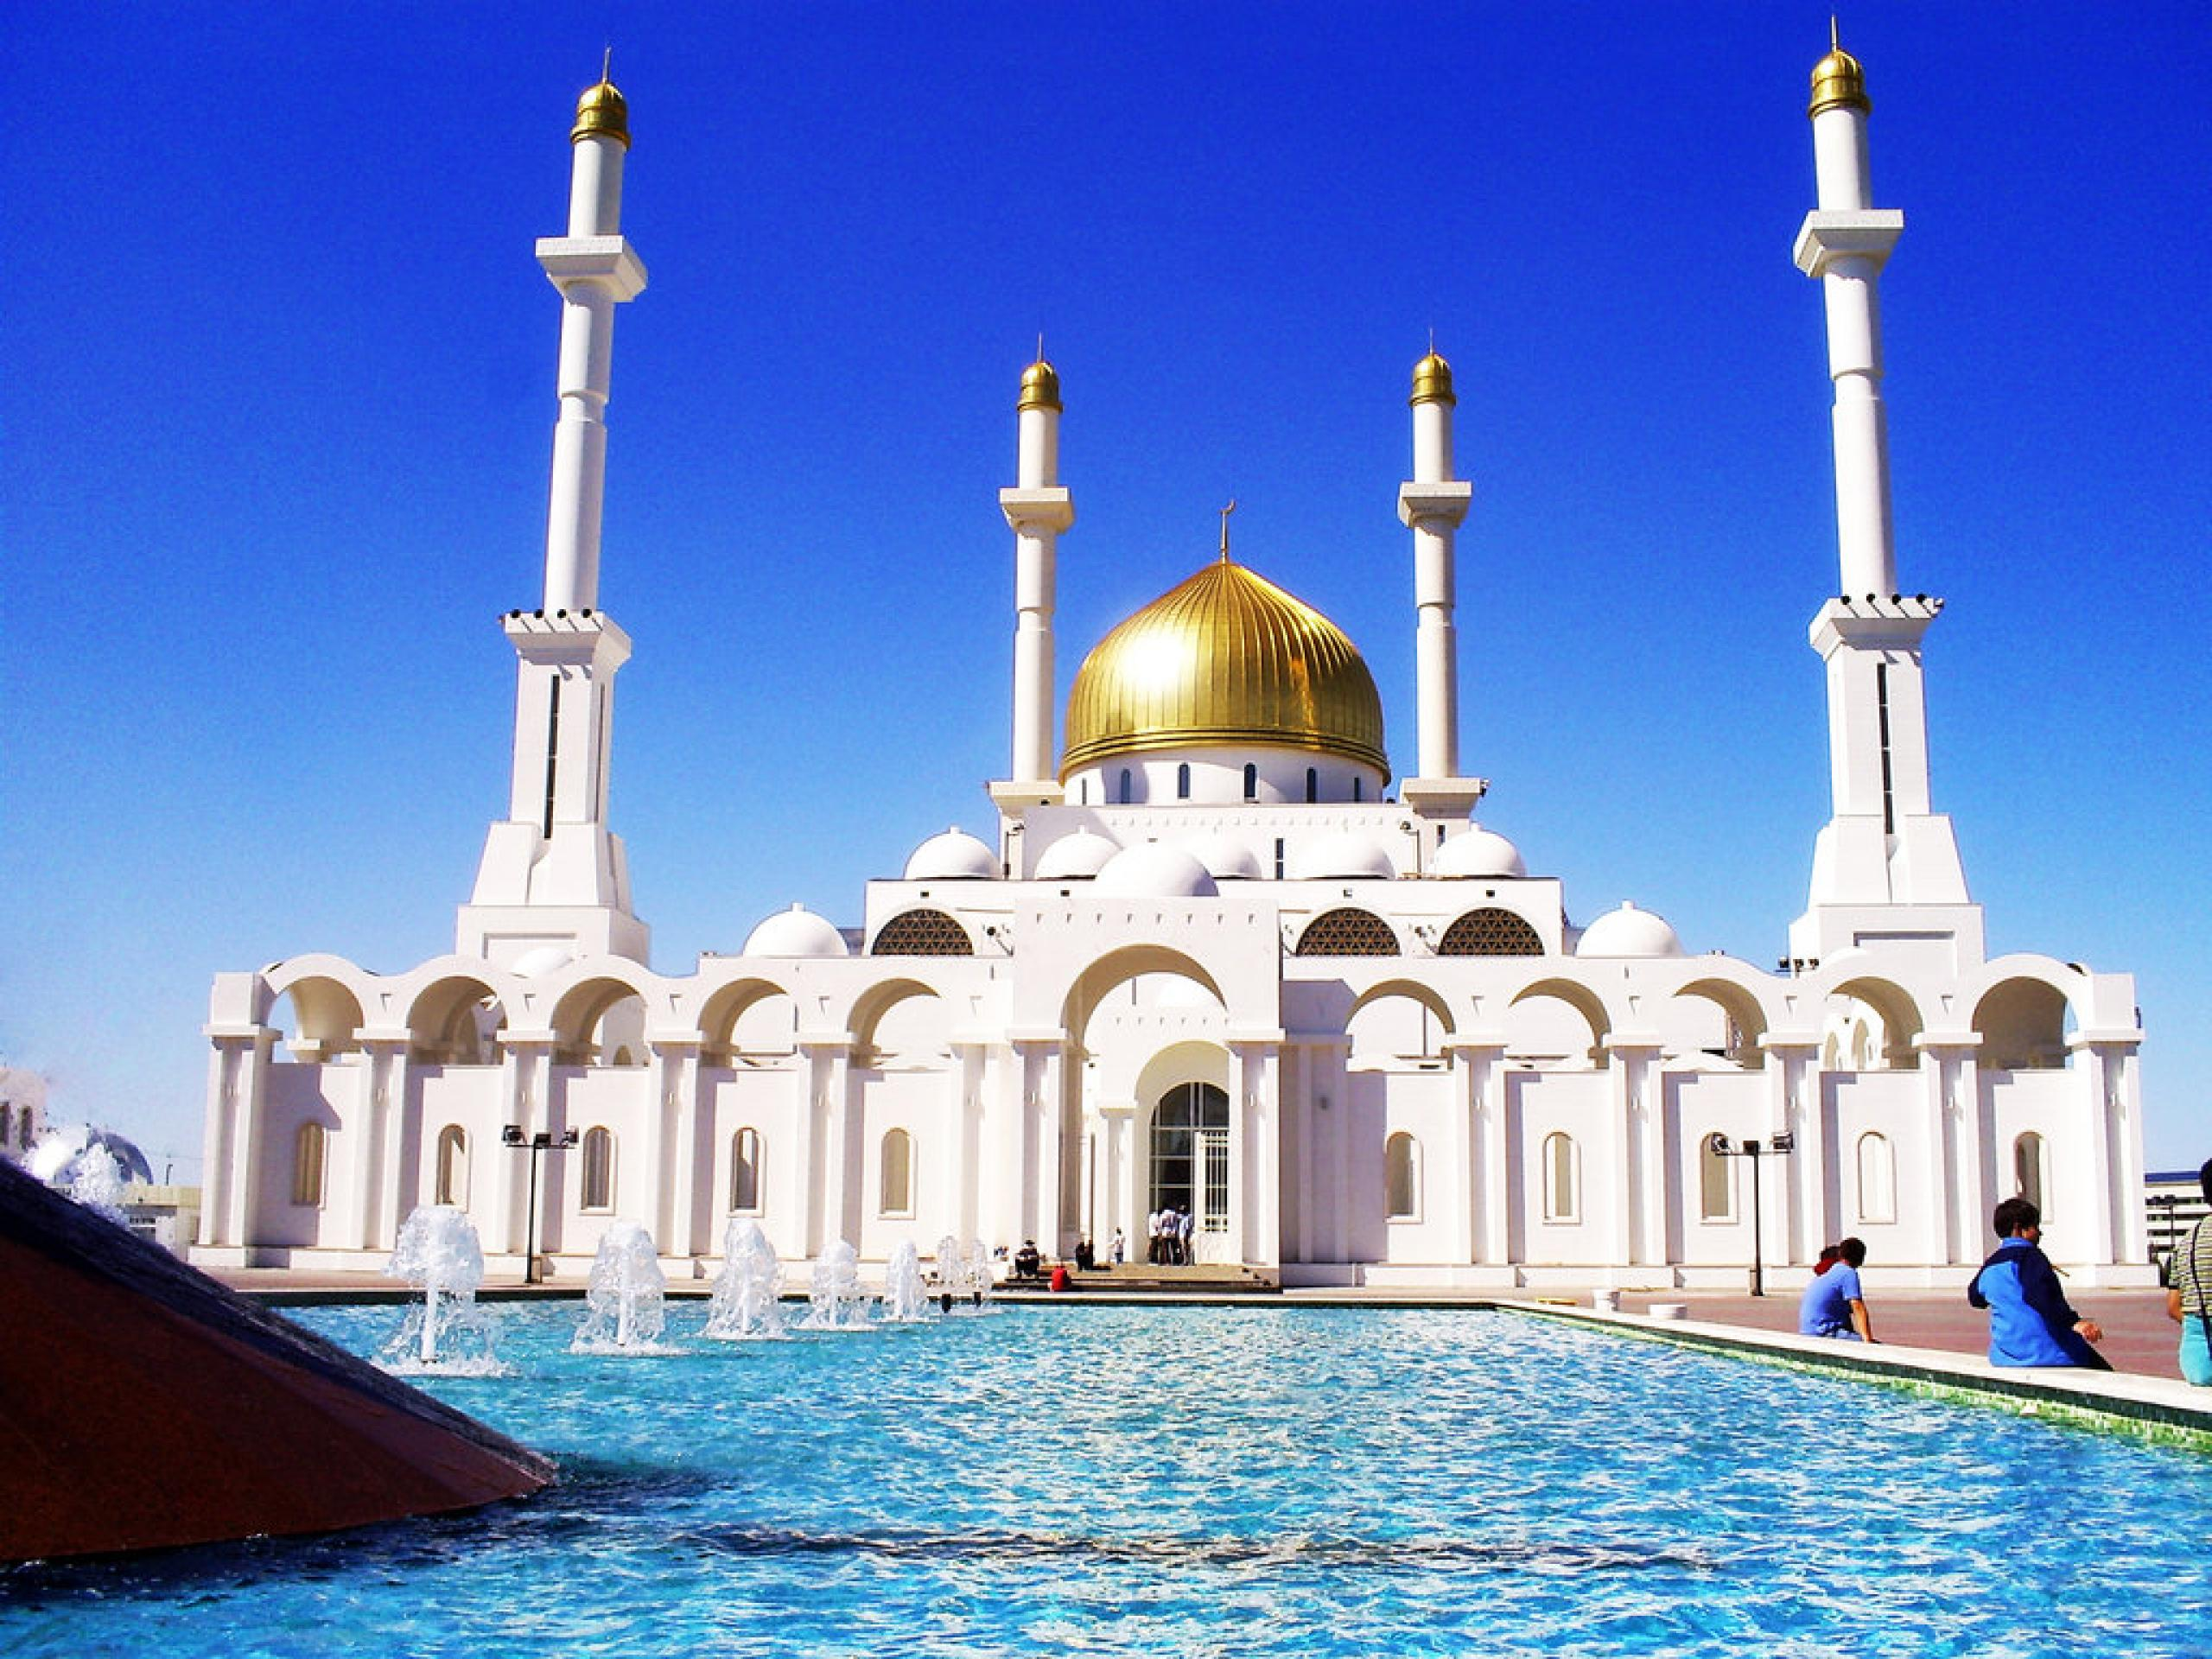 Mosque Wallpapers Religious Hq Mosque Pictures 4k Wallpapers 2019